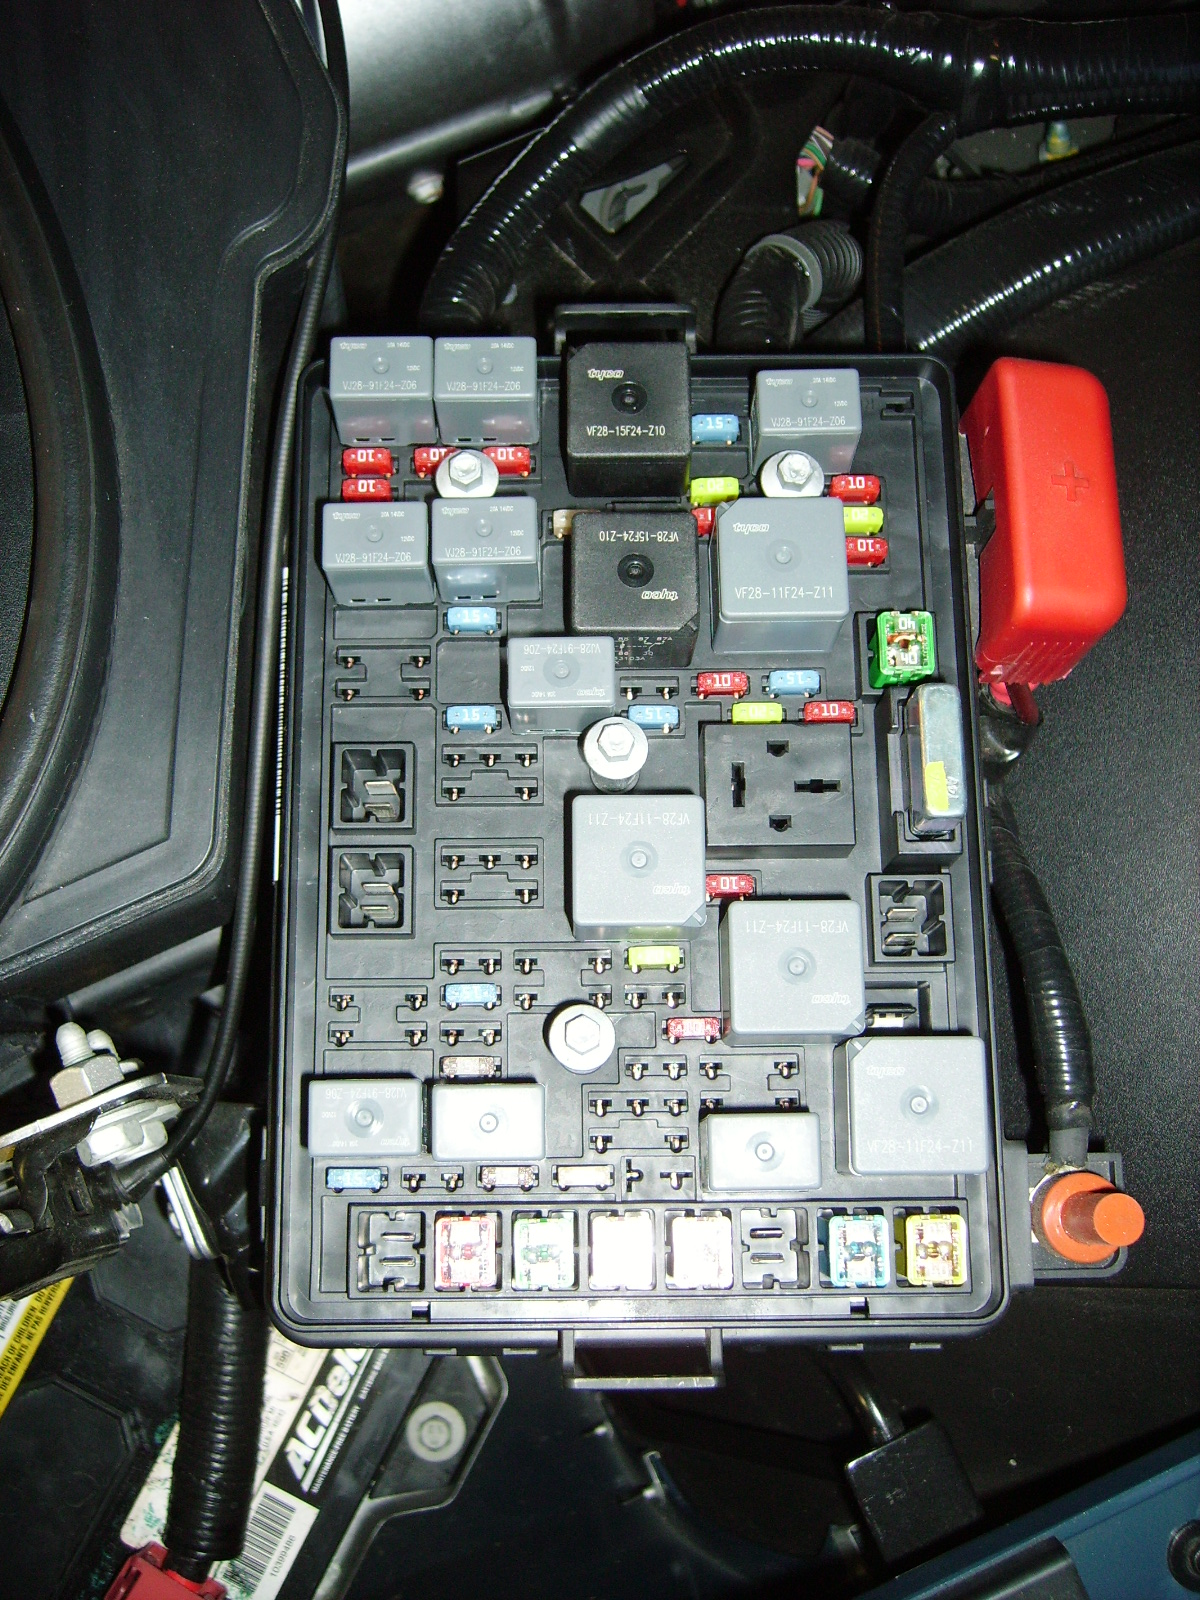 08 cobalt fuse diagram wiring schematic wiring diagram2005 chevrolet cobalt  fuse box diagram car fuse box